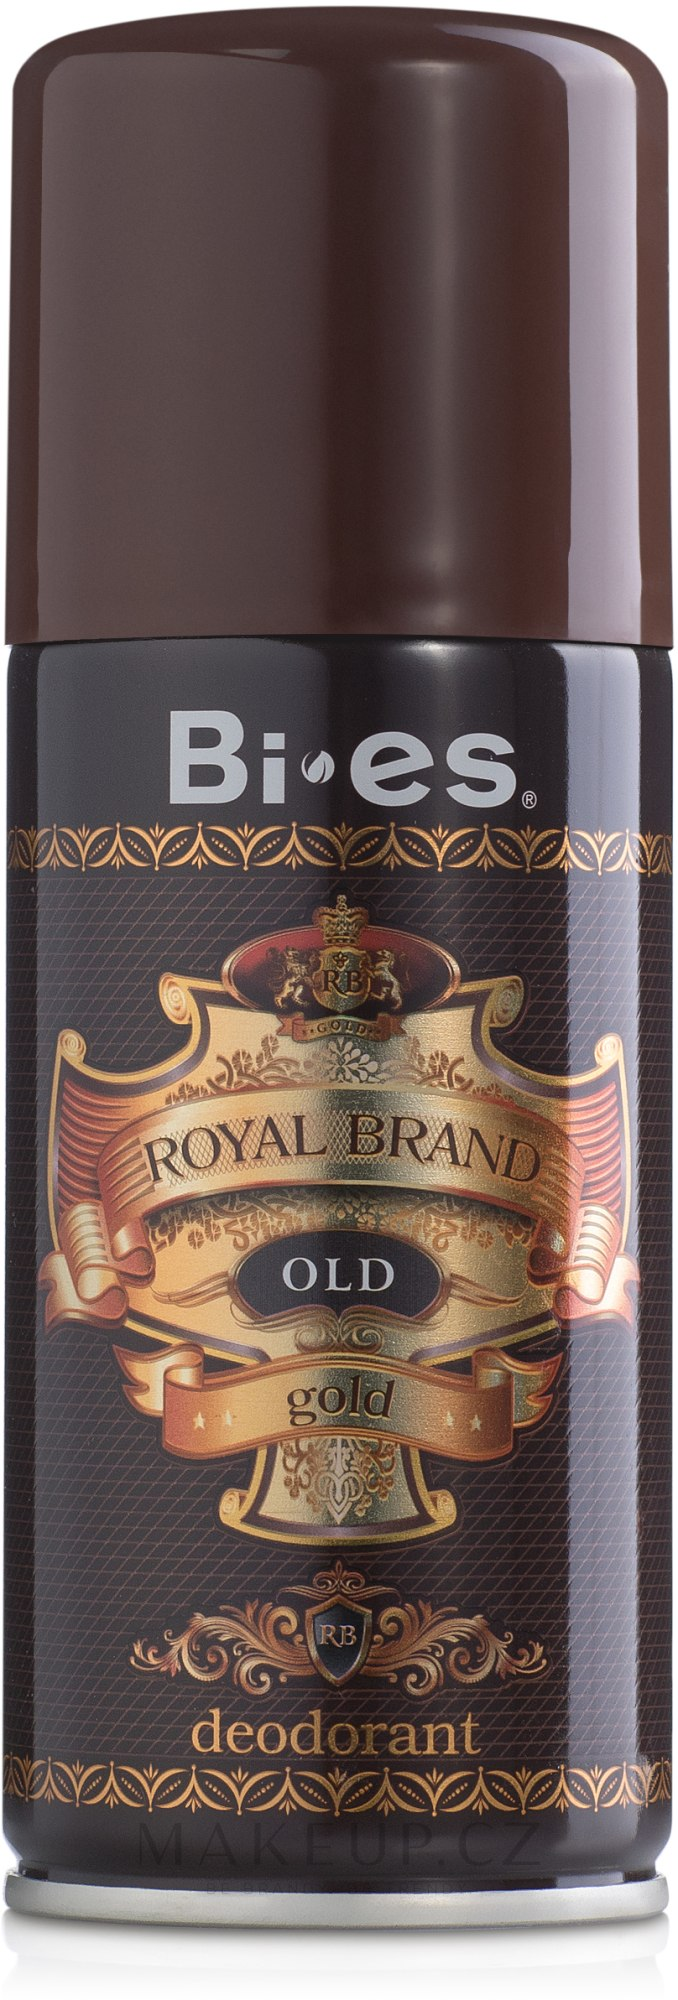 Deodorant-sprej - Bi-es Royal Brand Gold — foto 150 ml